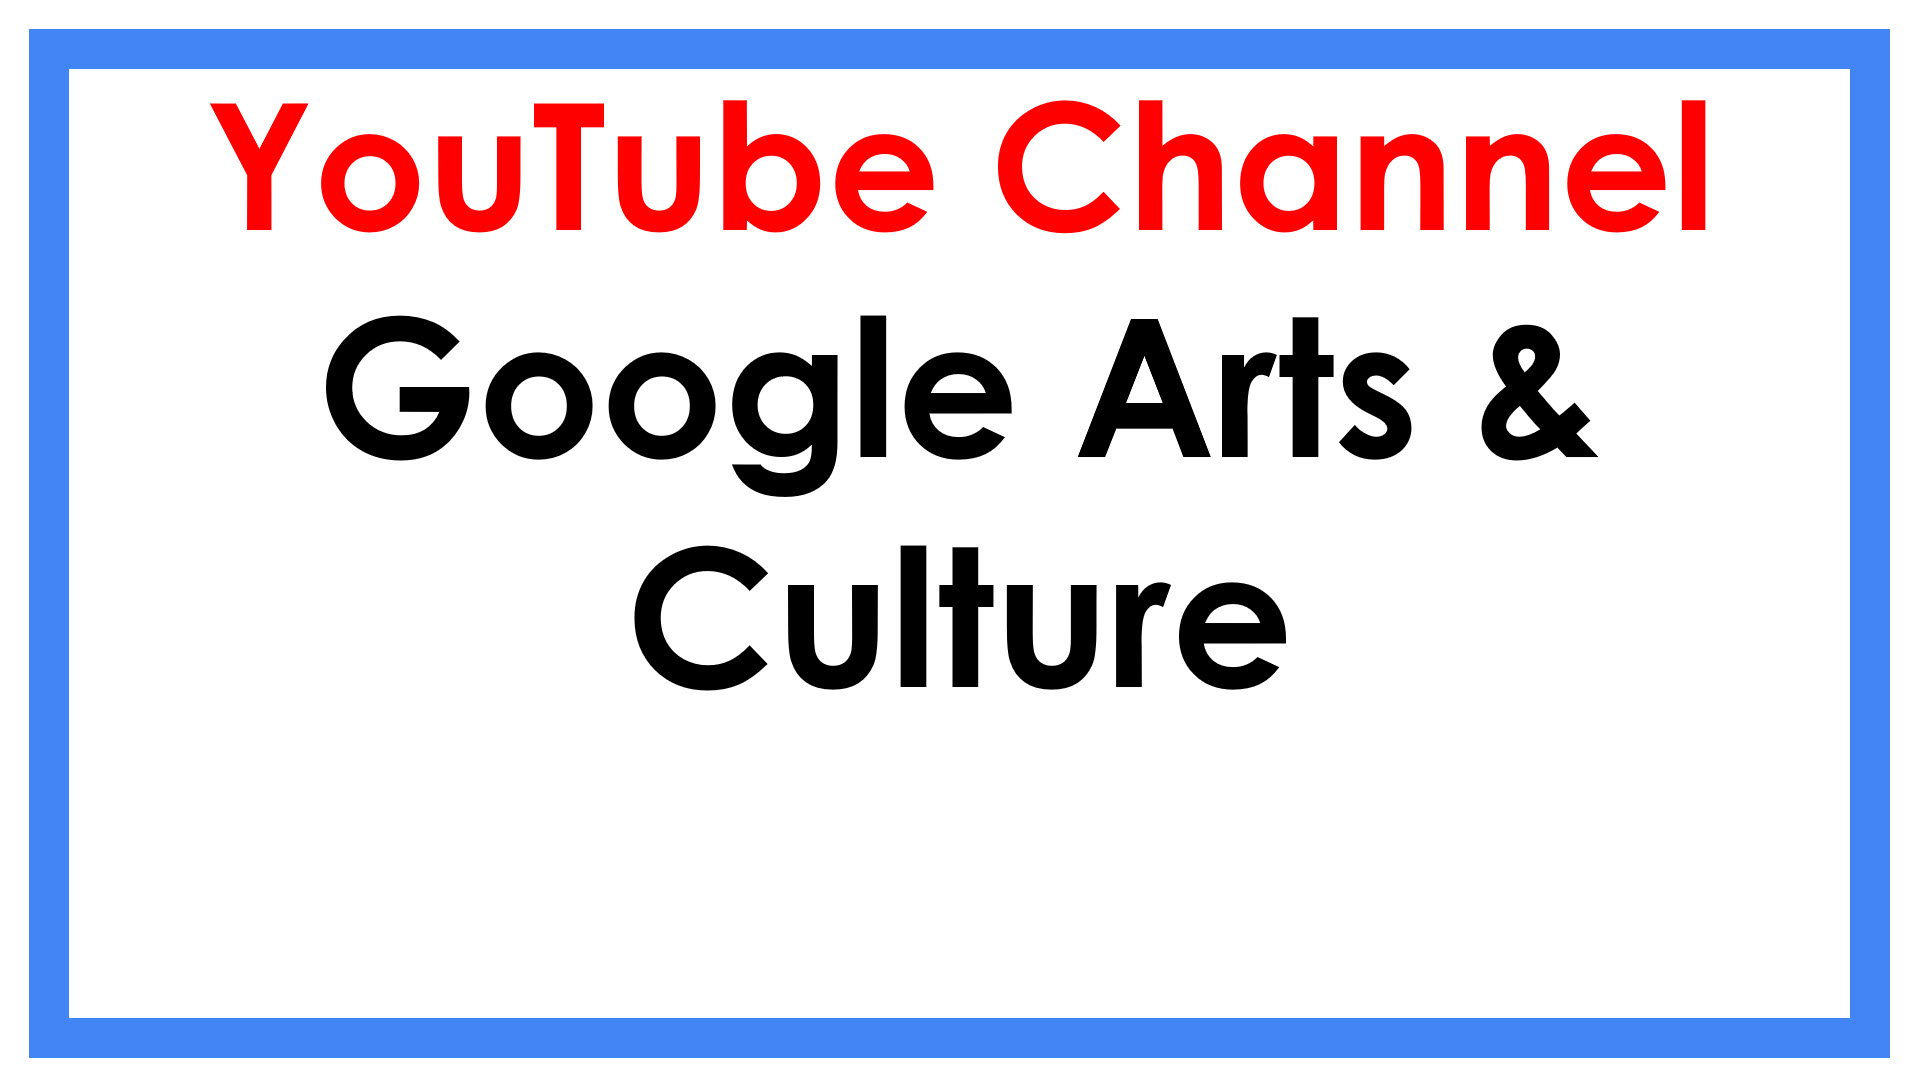 Google Arts & Culture YouTube Channel